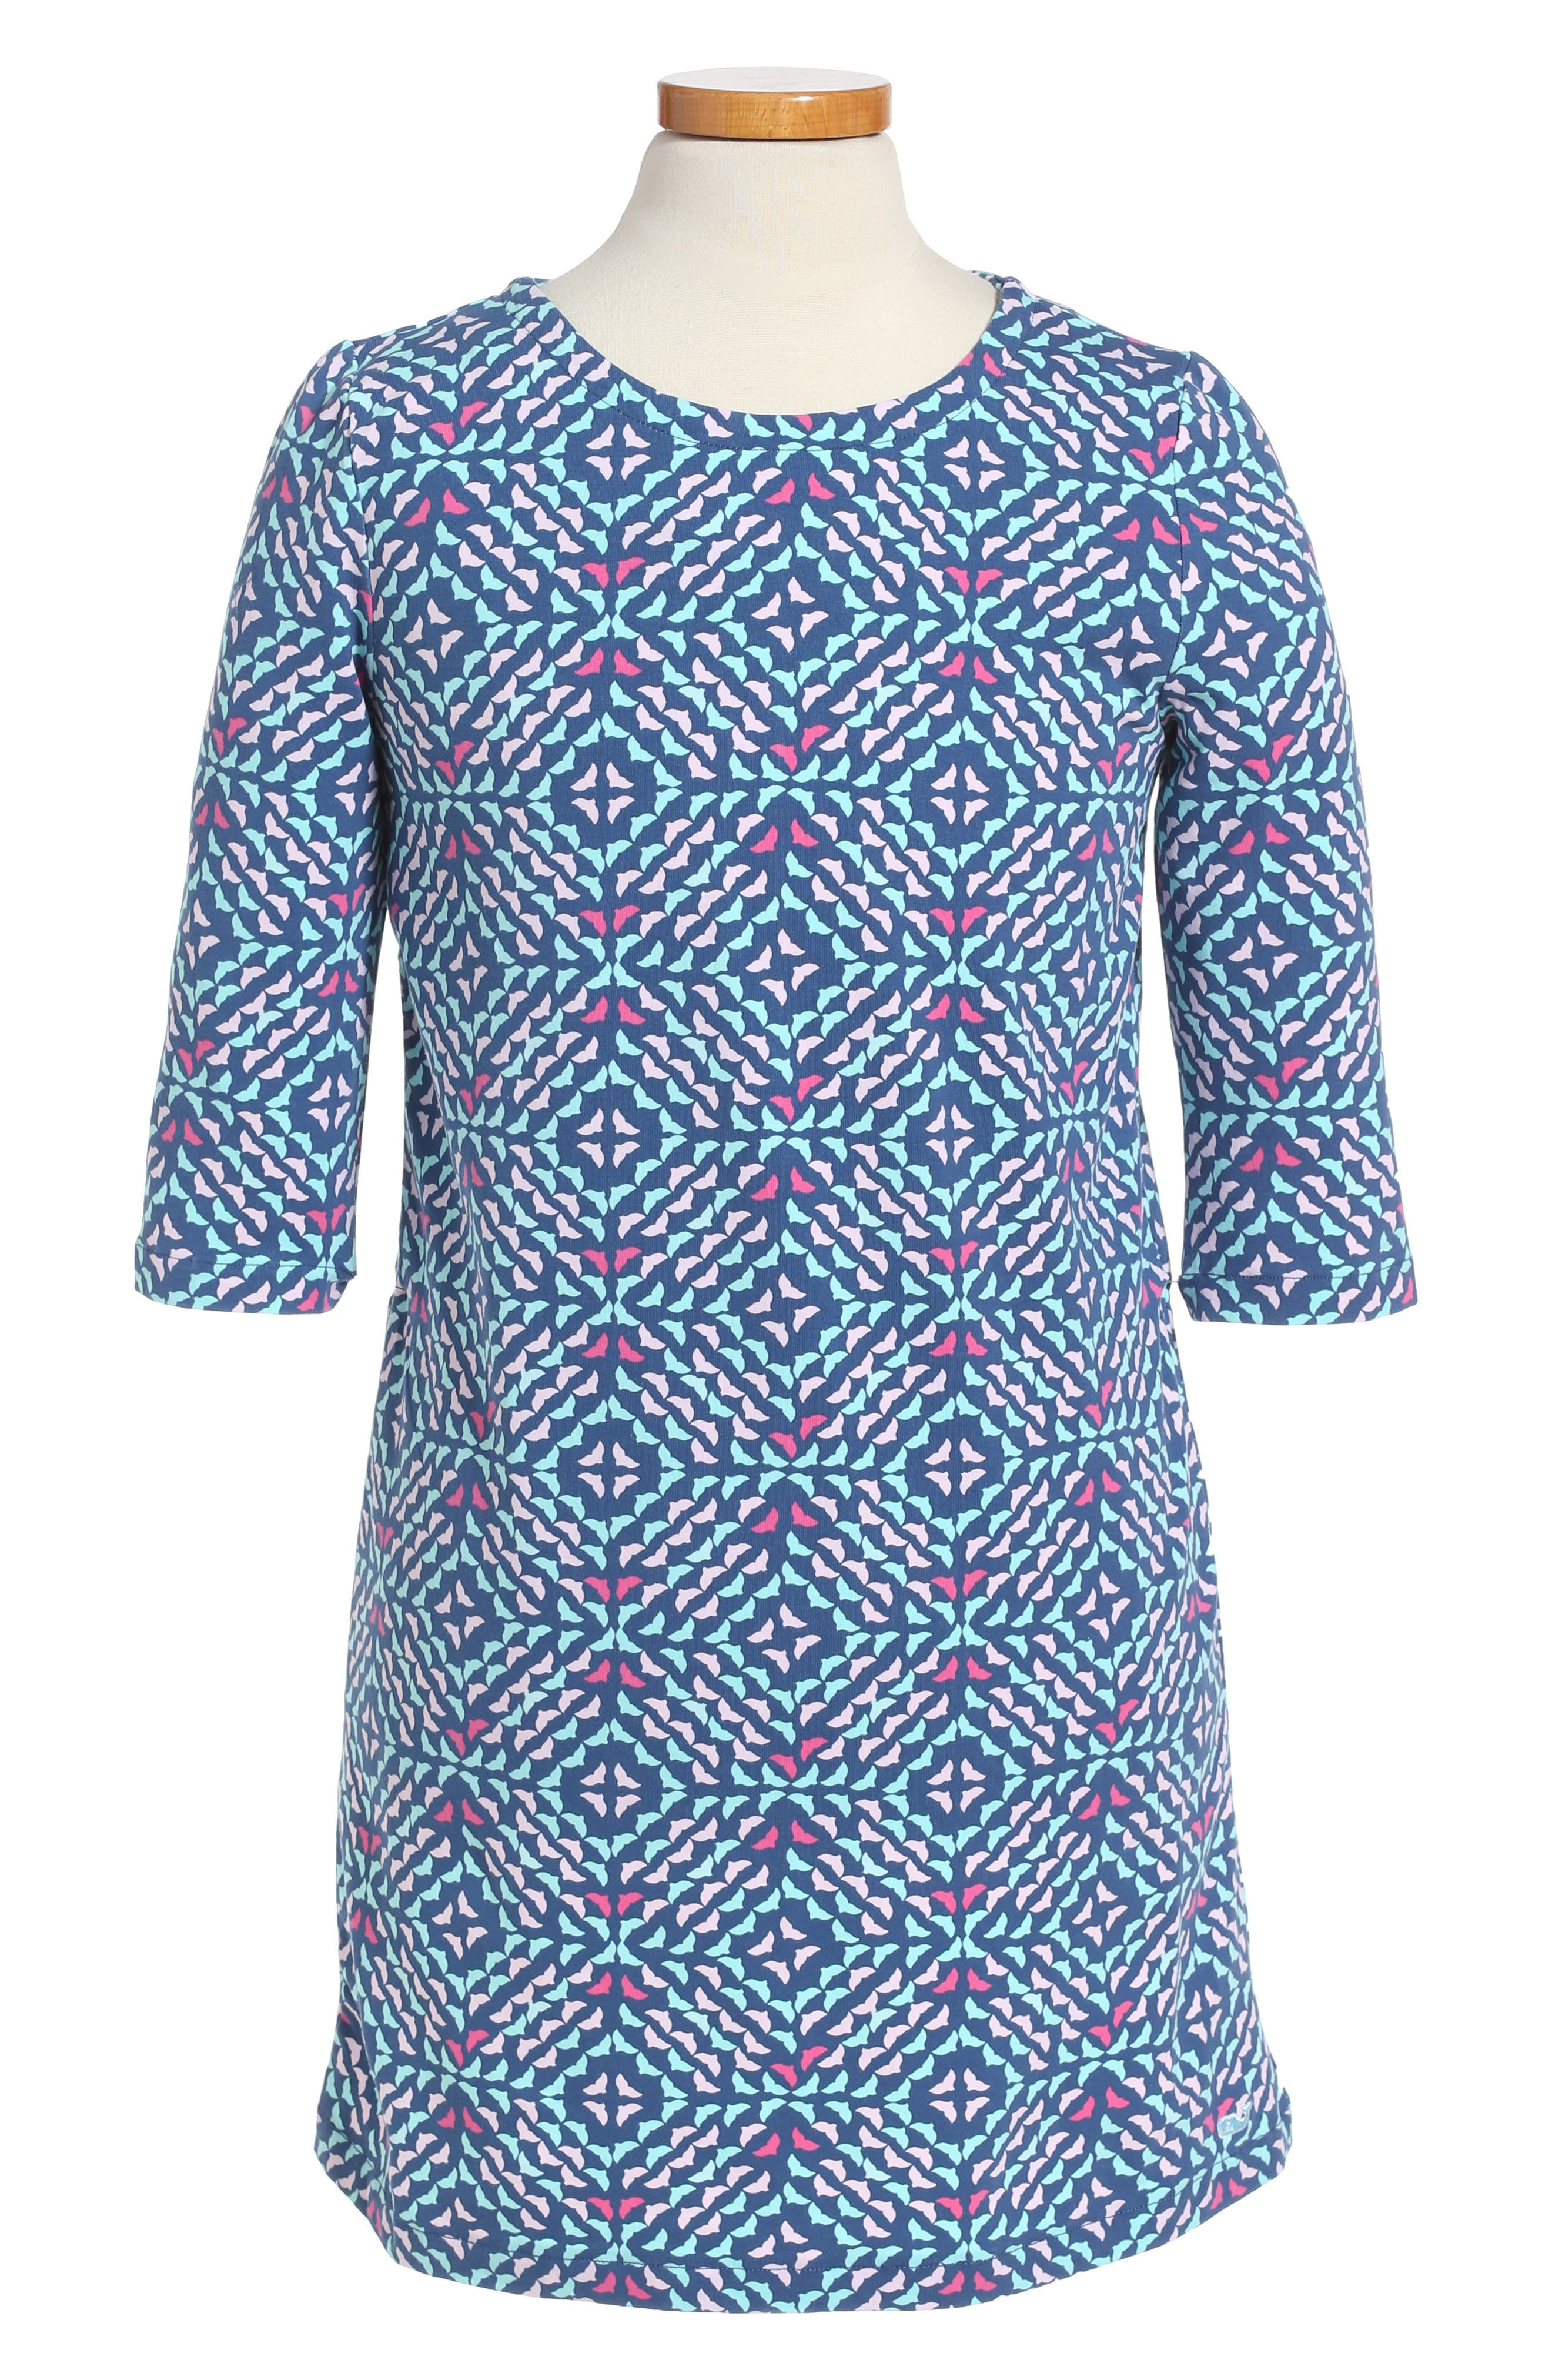 Vineyard Vines Whale Tail Shift Dress (Toddler Girls)